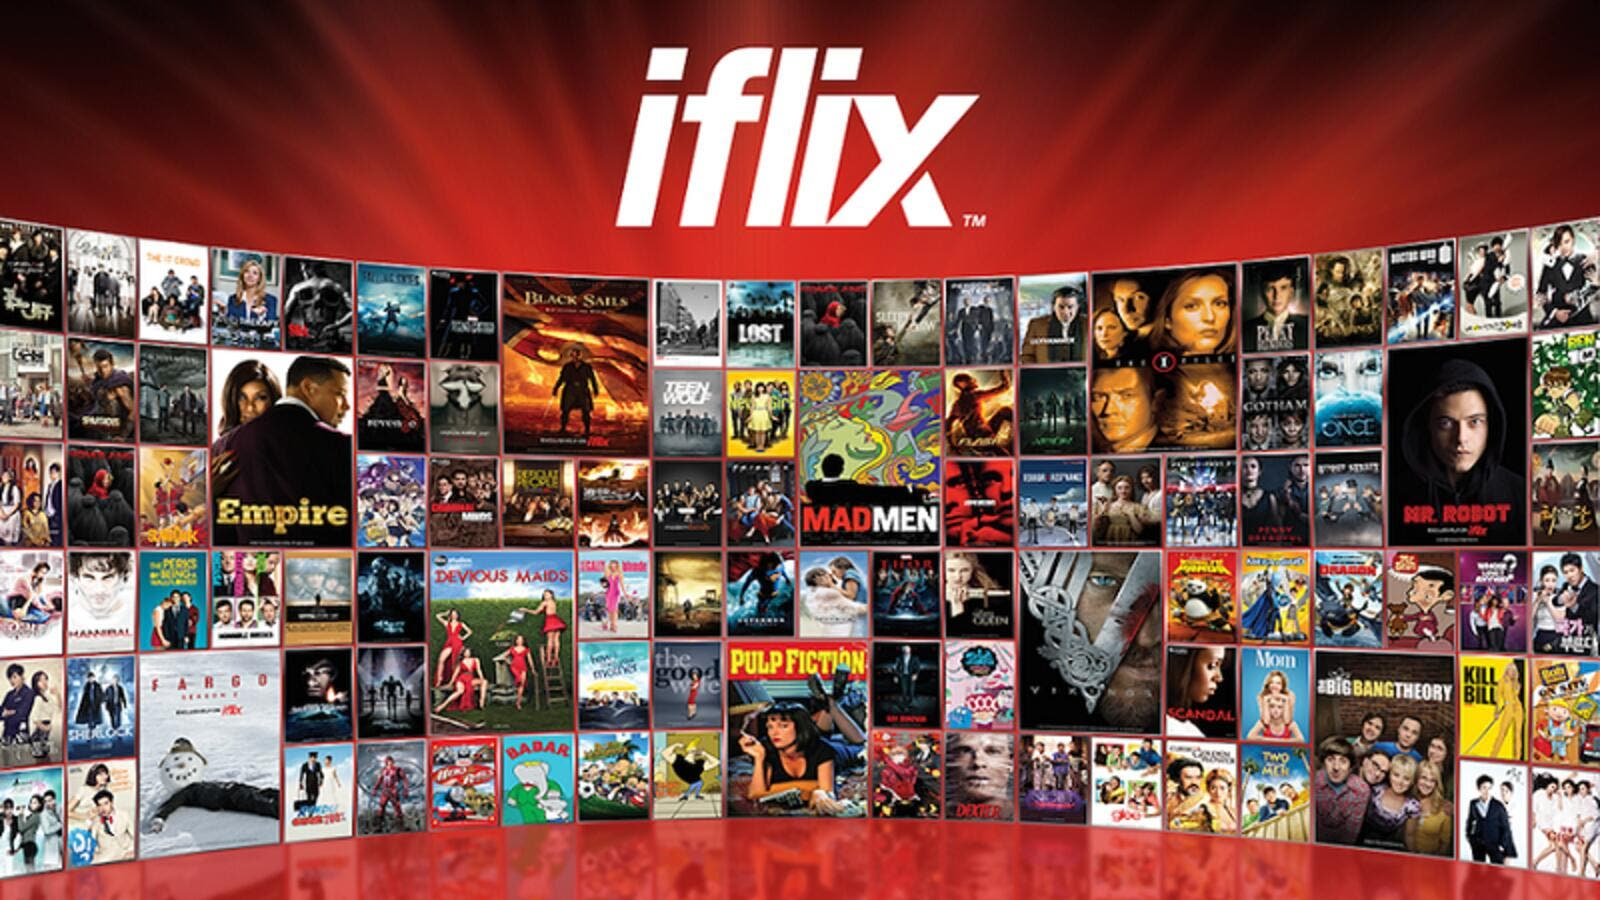 Drop the remote control, 'iflix Arabia' launches internet TV